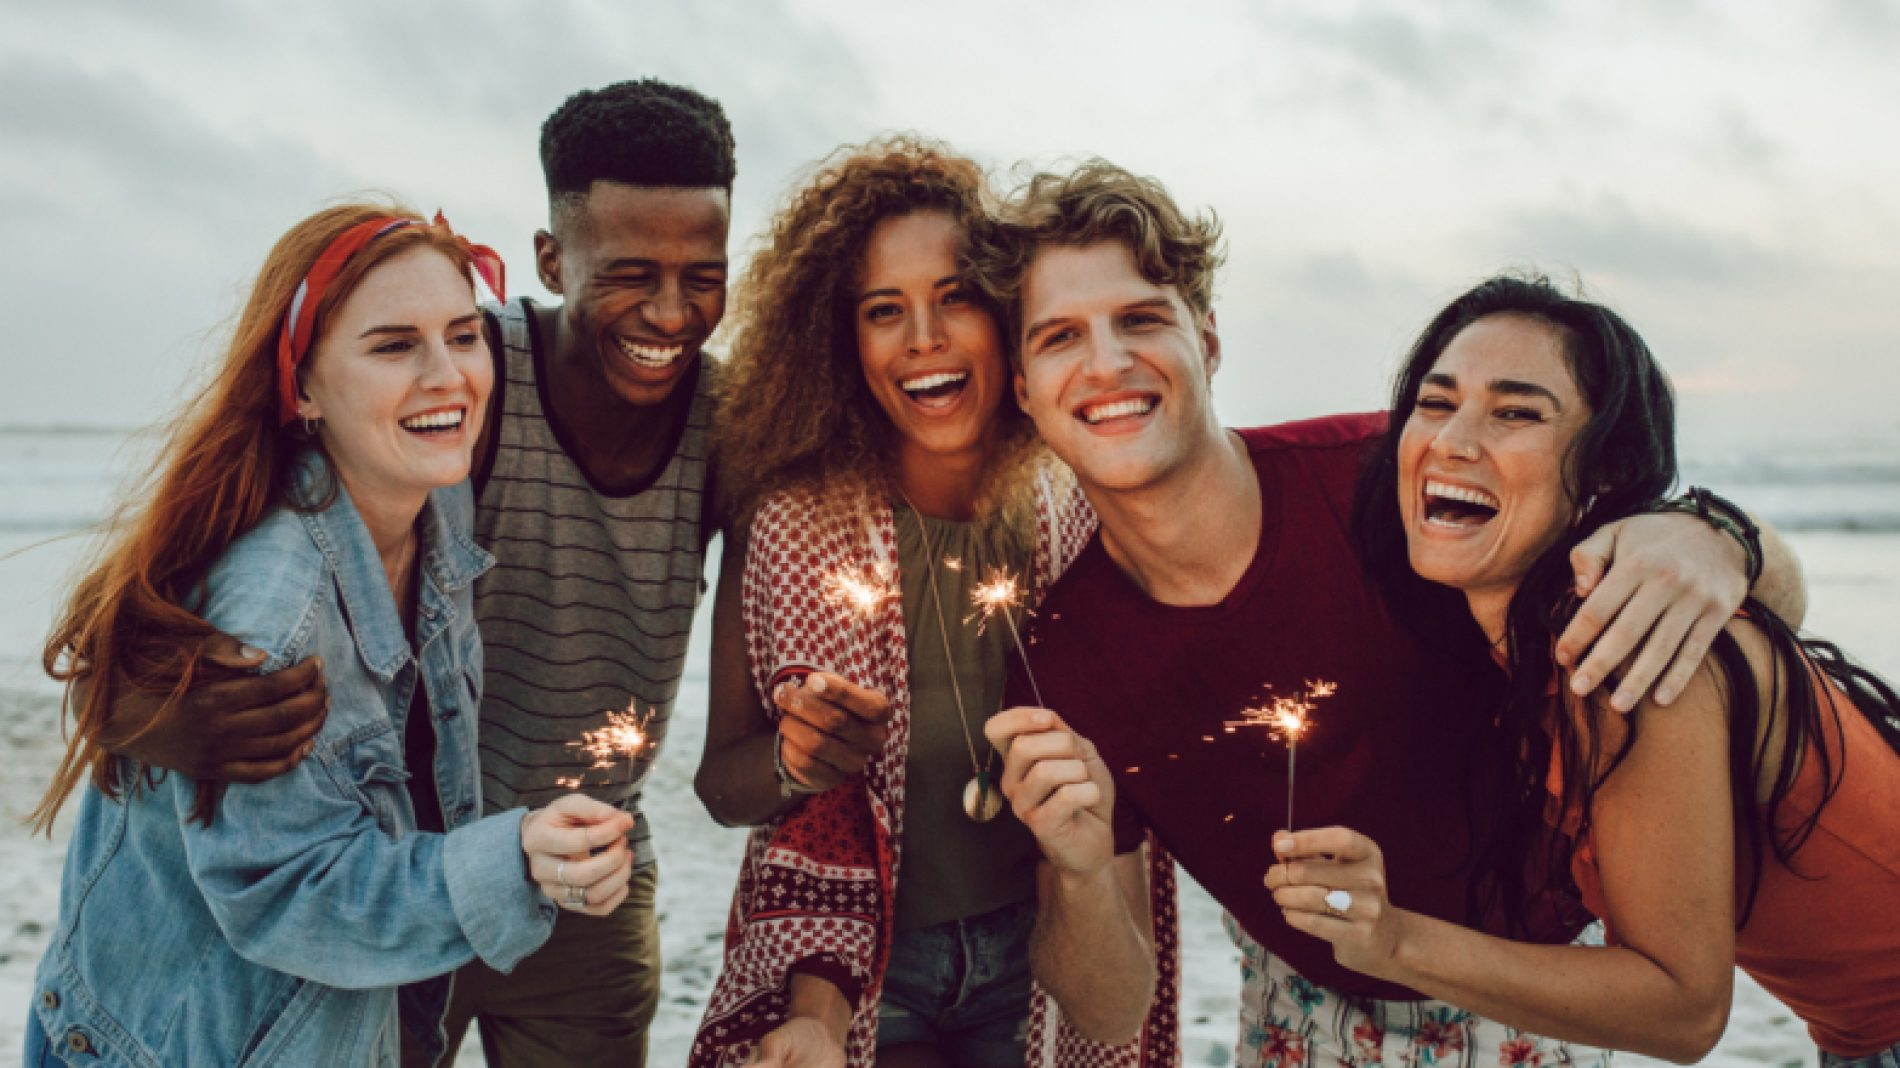 Group-of-young-people-with-sparklers-cXRRed